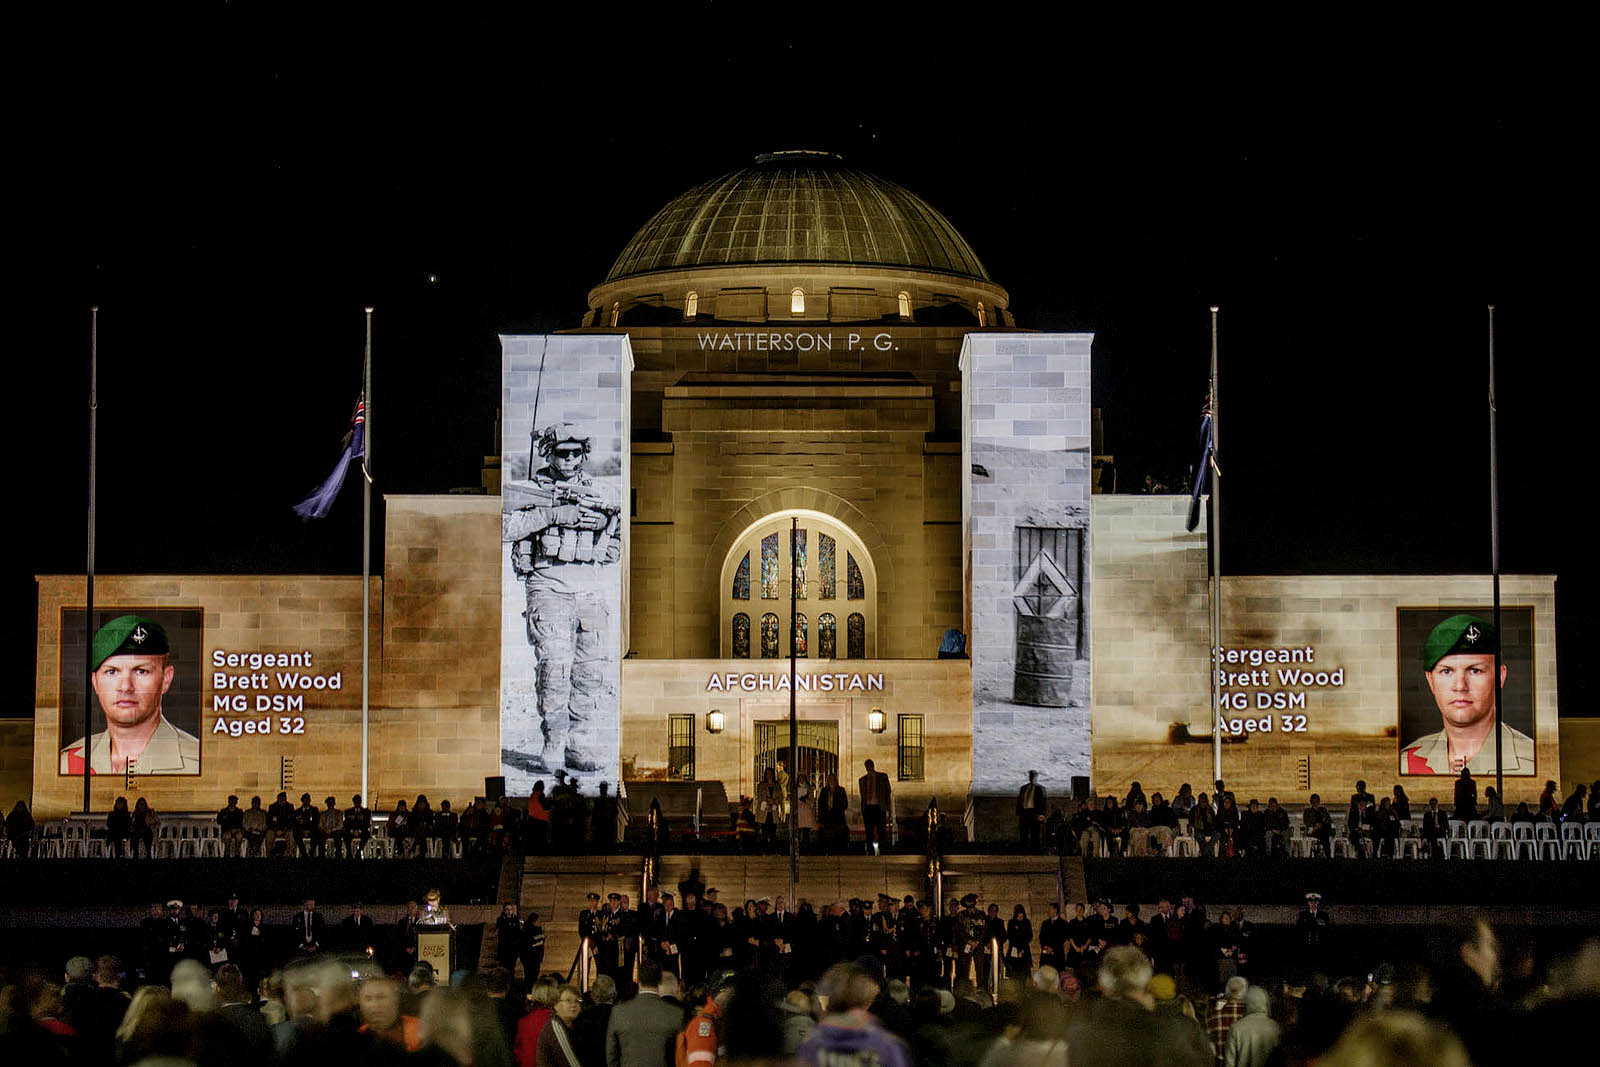 Images from Gary Ramage's series 'Afghanistan' (2011) were projected on to the Australian War Memorial as part of the 2018 ANZAC Day Dawn Service commemorations.